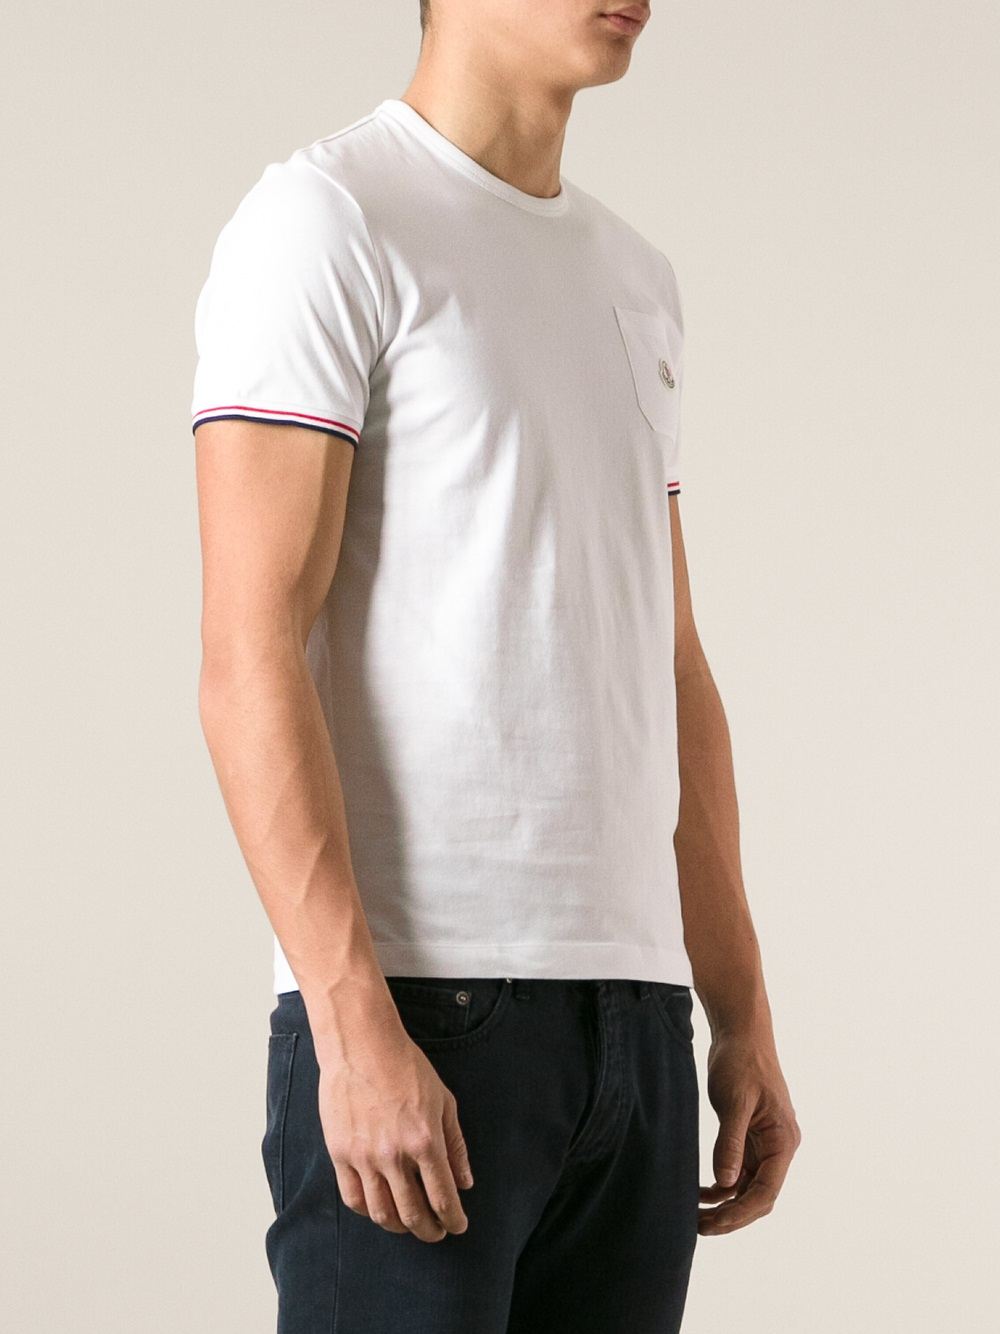 Lyst moncler classic t shirt in white for men for Off white moncler t shirt